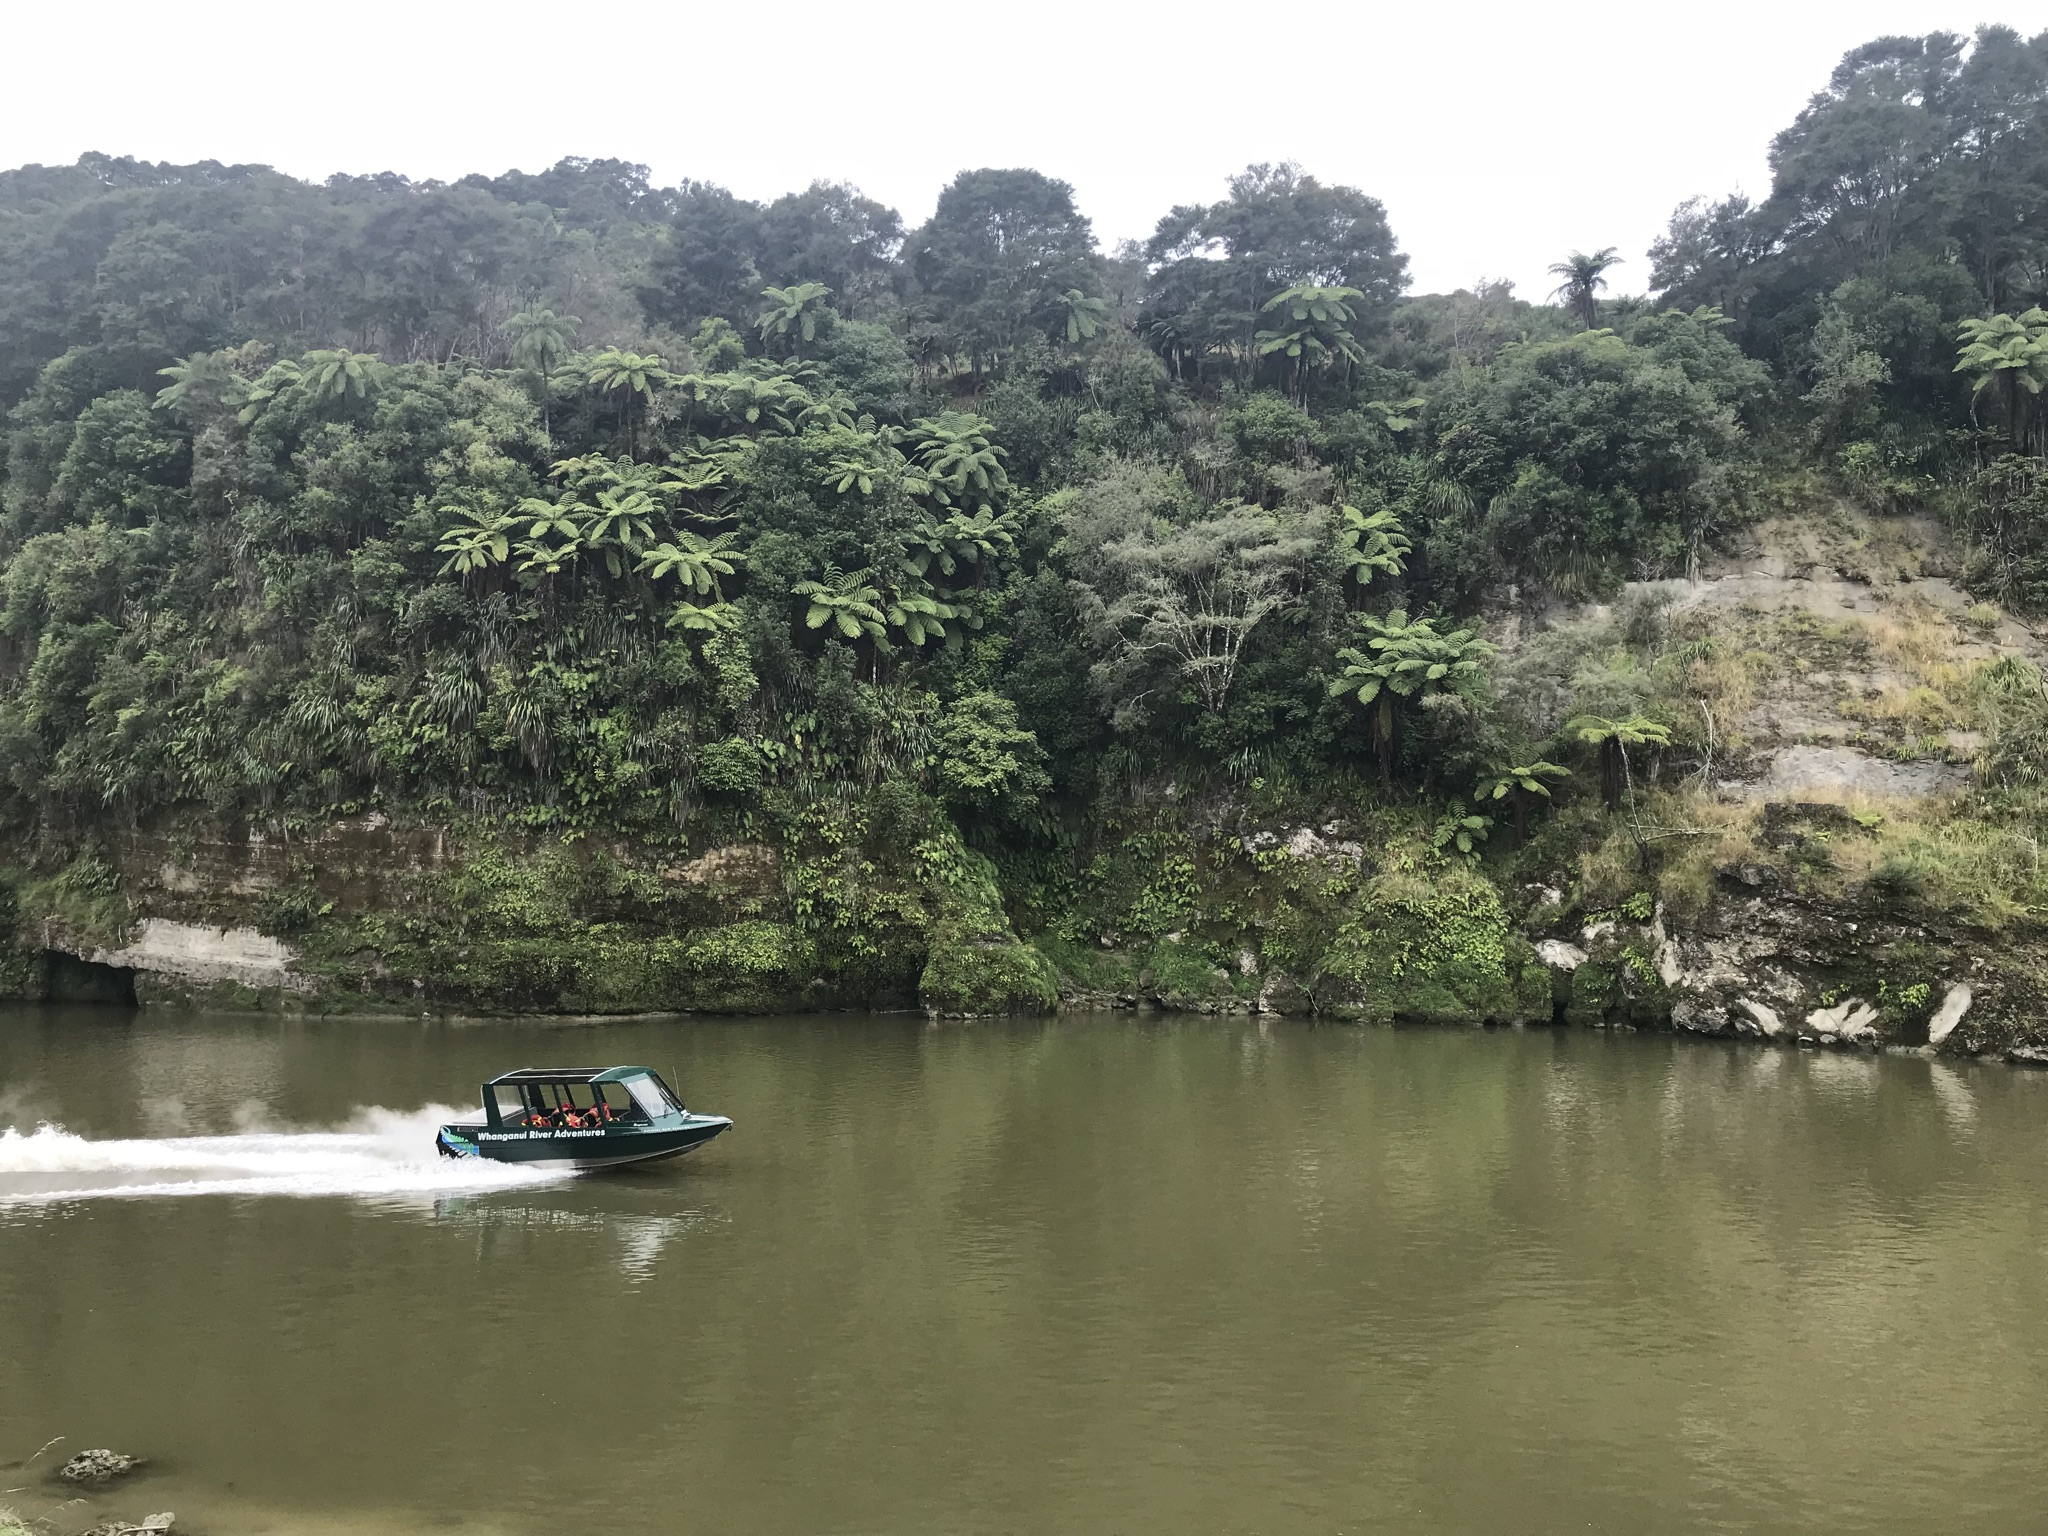 Jet boating on the Whanganui River, New Zealand (image by Jacqui Gibson).